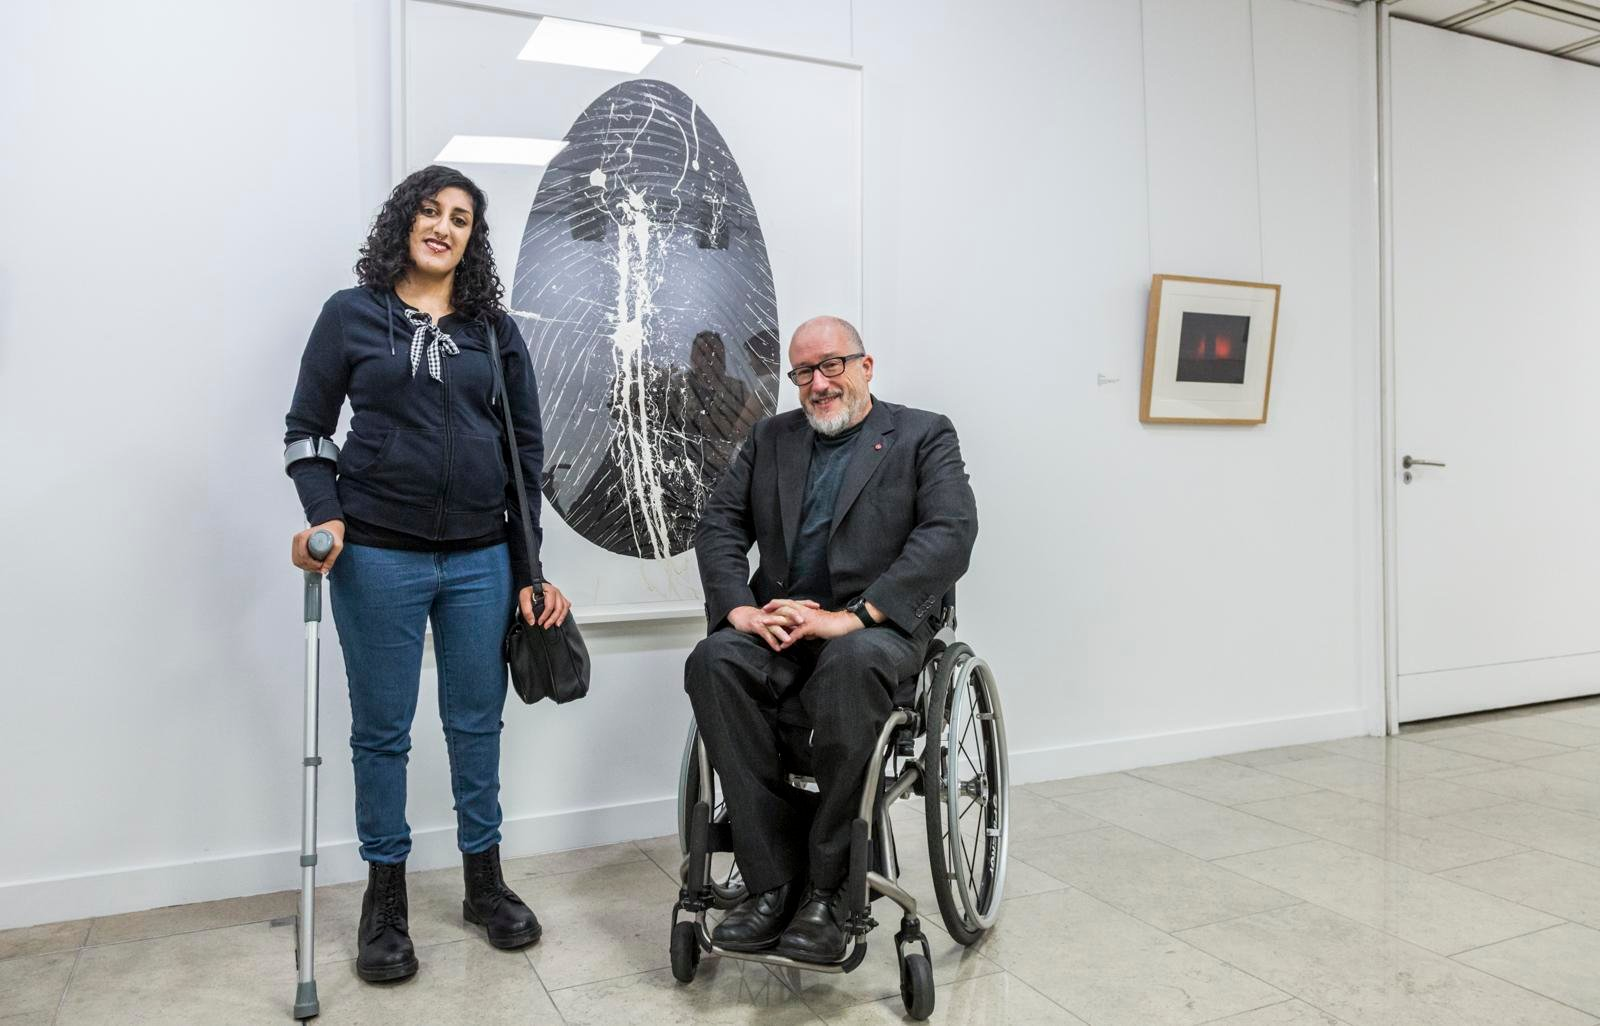 A white male wheelchair user and a young woman of South Asian heritage with a crutch are in a gallery space either side of a huge painting of a black oval on white canvas. They are looking at the camera and smiling